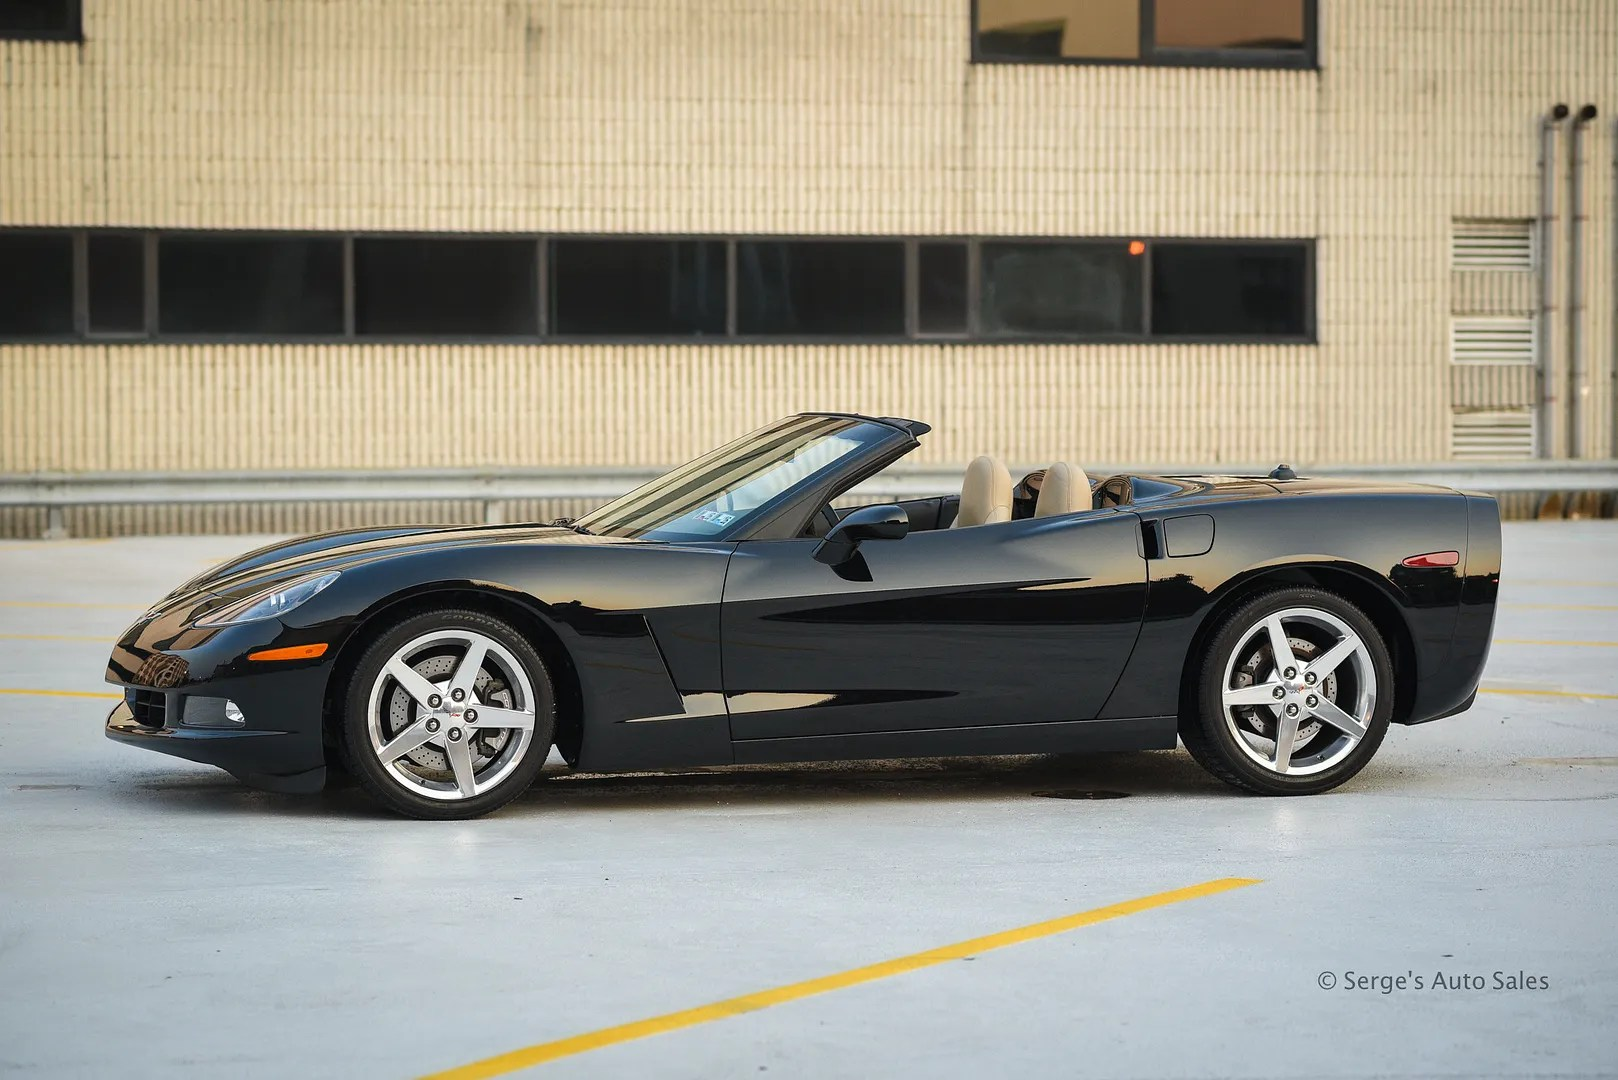 photo 2005-C6-Corvette-Convertible-For-Sale-Scranton-Serges-Auto-Sales-dealer--21_zpsvqovbttf.jpg